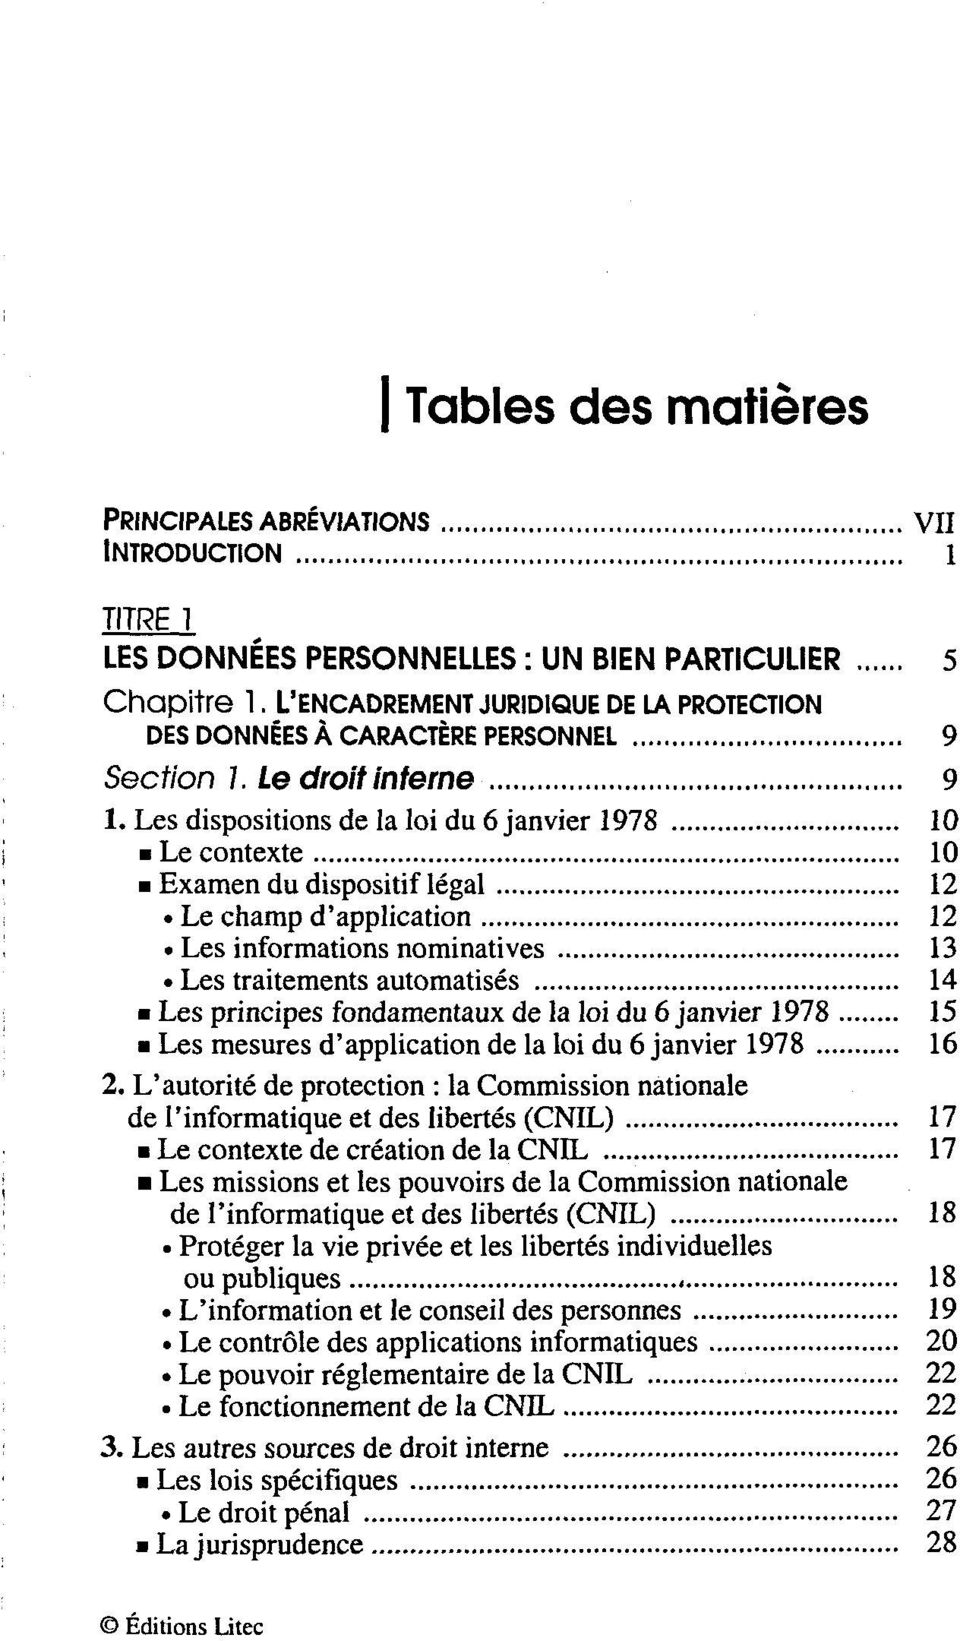 Les dispositions de la loi du 6 janvier 1978 10 Le contexte 10 Examen du dispositif légal 12 Le champ d'application 12 Les informations nominatives 13 Les traitements automatisés 14 Les principes